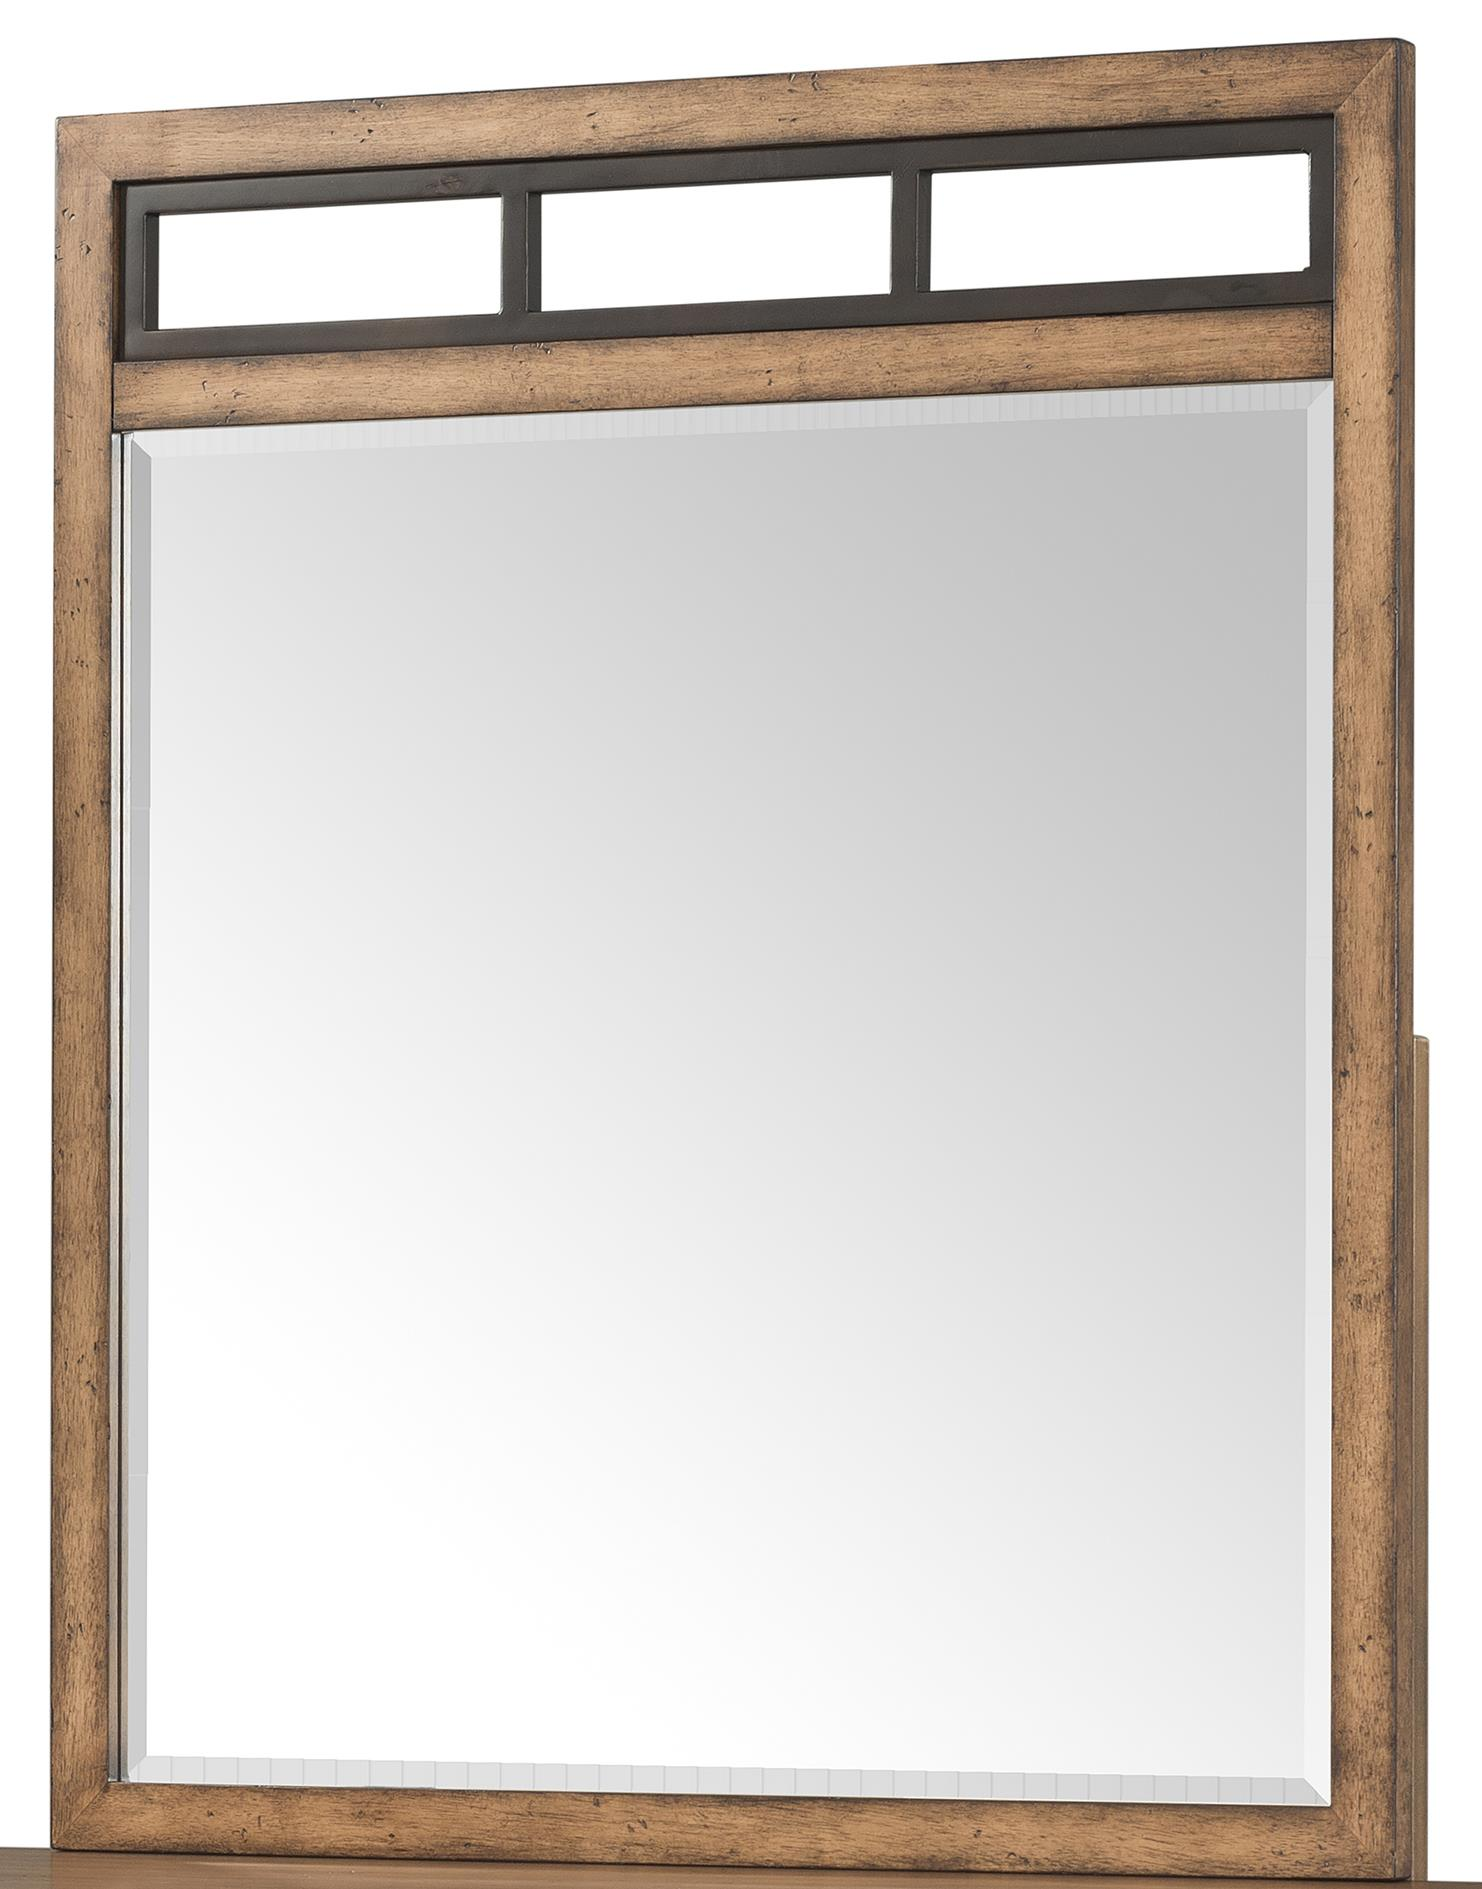 Morris Home Furnishings Tribecca Tribecca Mirror - Item Number: 710-660